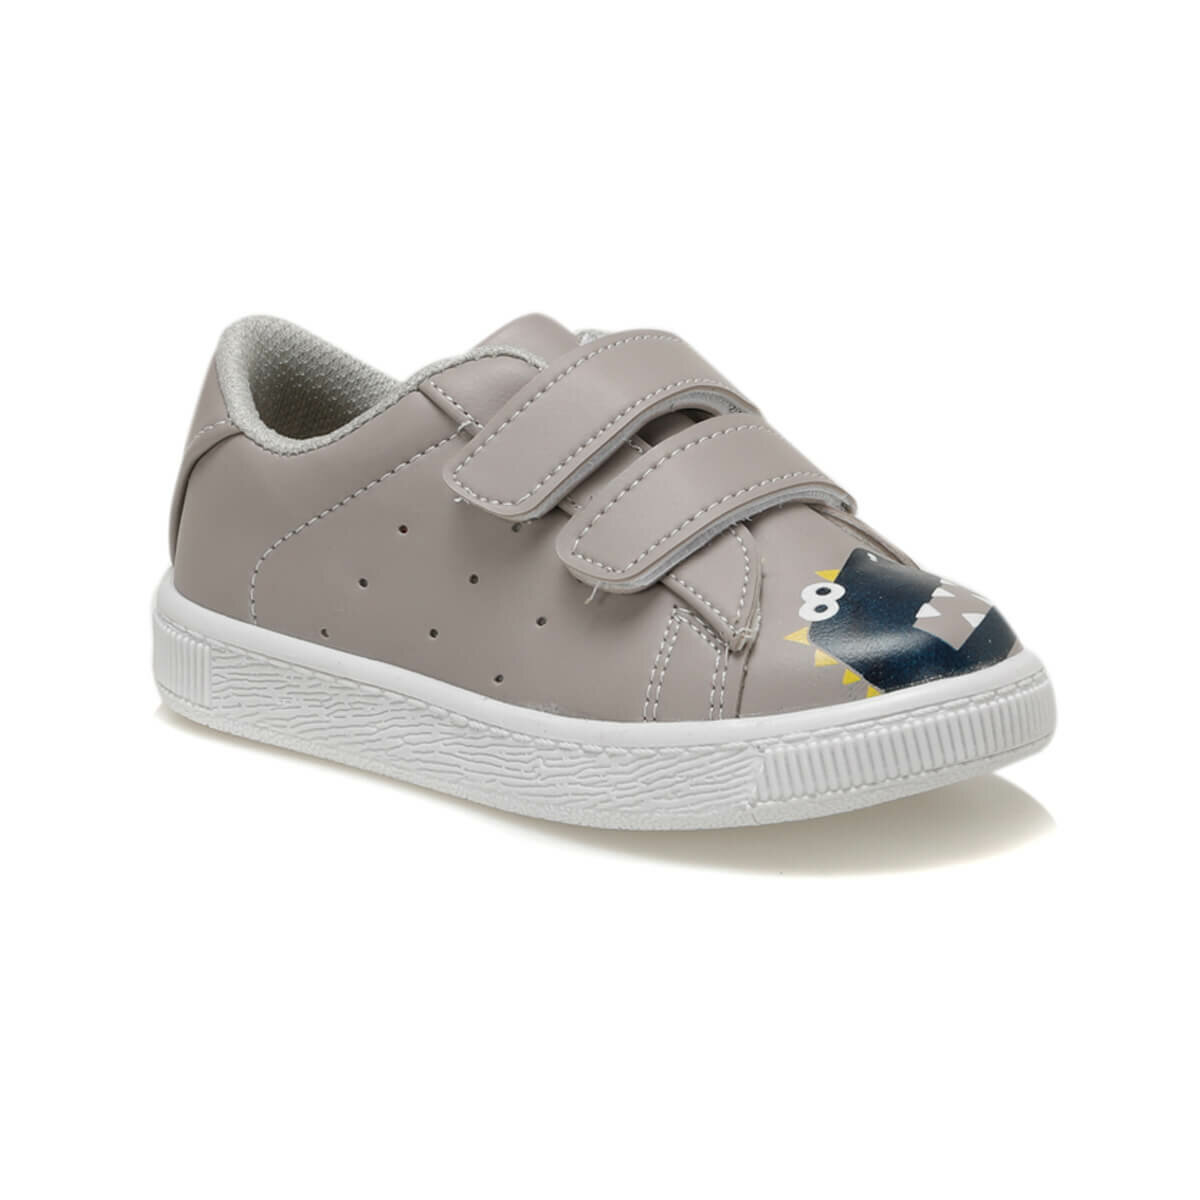 FLO 91. LACOW. P Gray Male Child Shoes SPYMAN